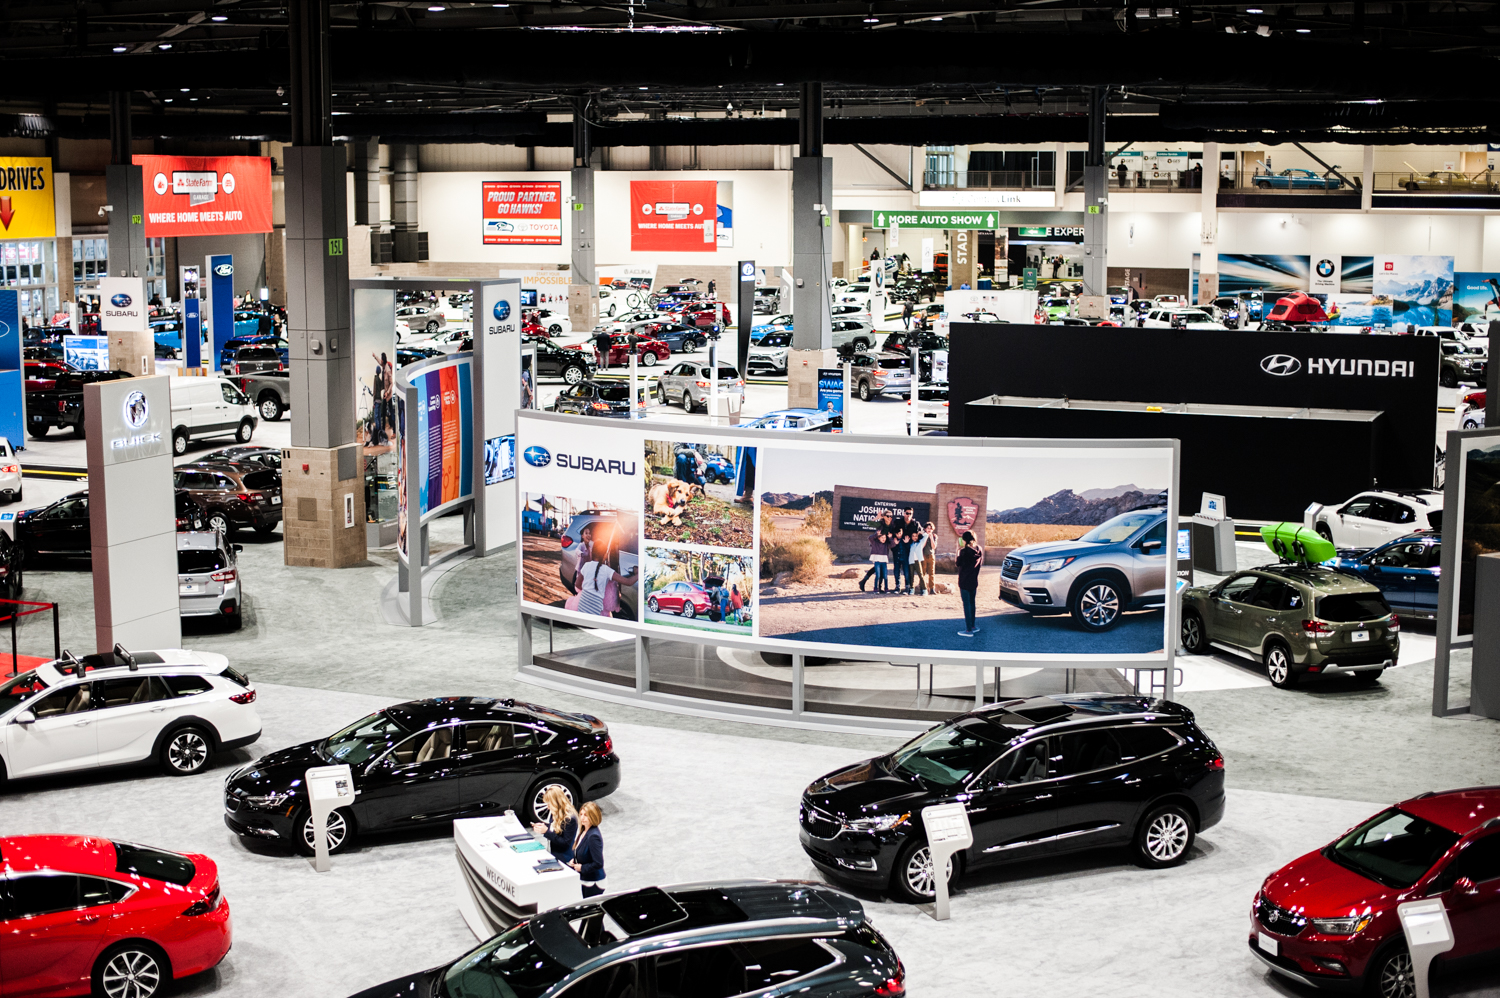 The Seattle International Auto Show{ }showcases all that's new in cars, trucks, exotics, super cars, electrics and all the latest models from the world's automobile makers. We scoured the place for the most expensive vehicles we could find - and aye caramba - some of these are literally the cars of our dreams. The Auto Show runs Nov. 9-12, 2018 at CenturyLink Field Event Center. (Image: Elizabeth Crook / Seattle Refined)